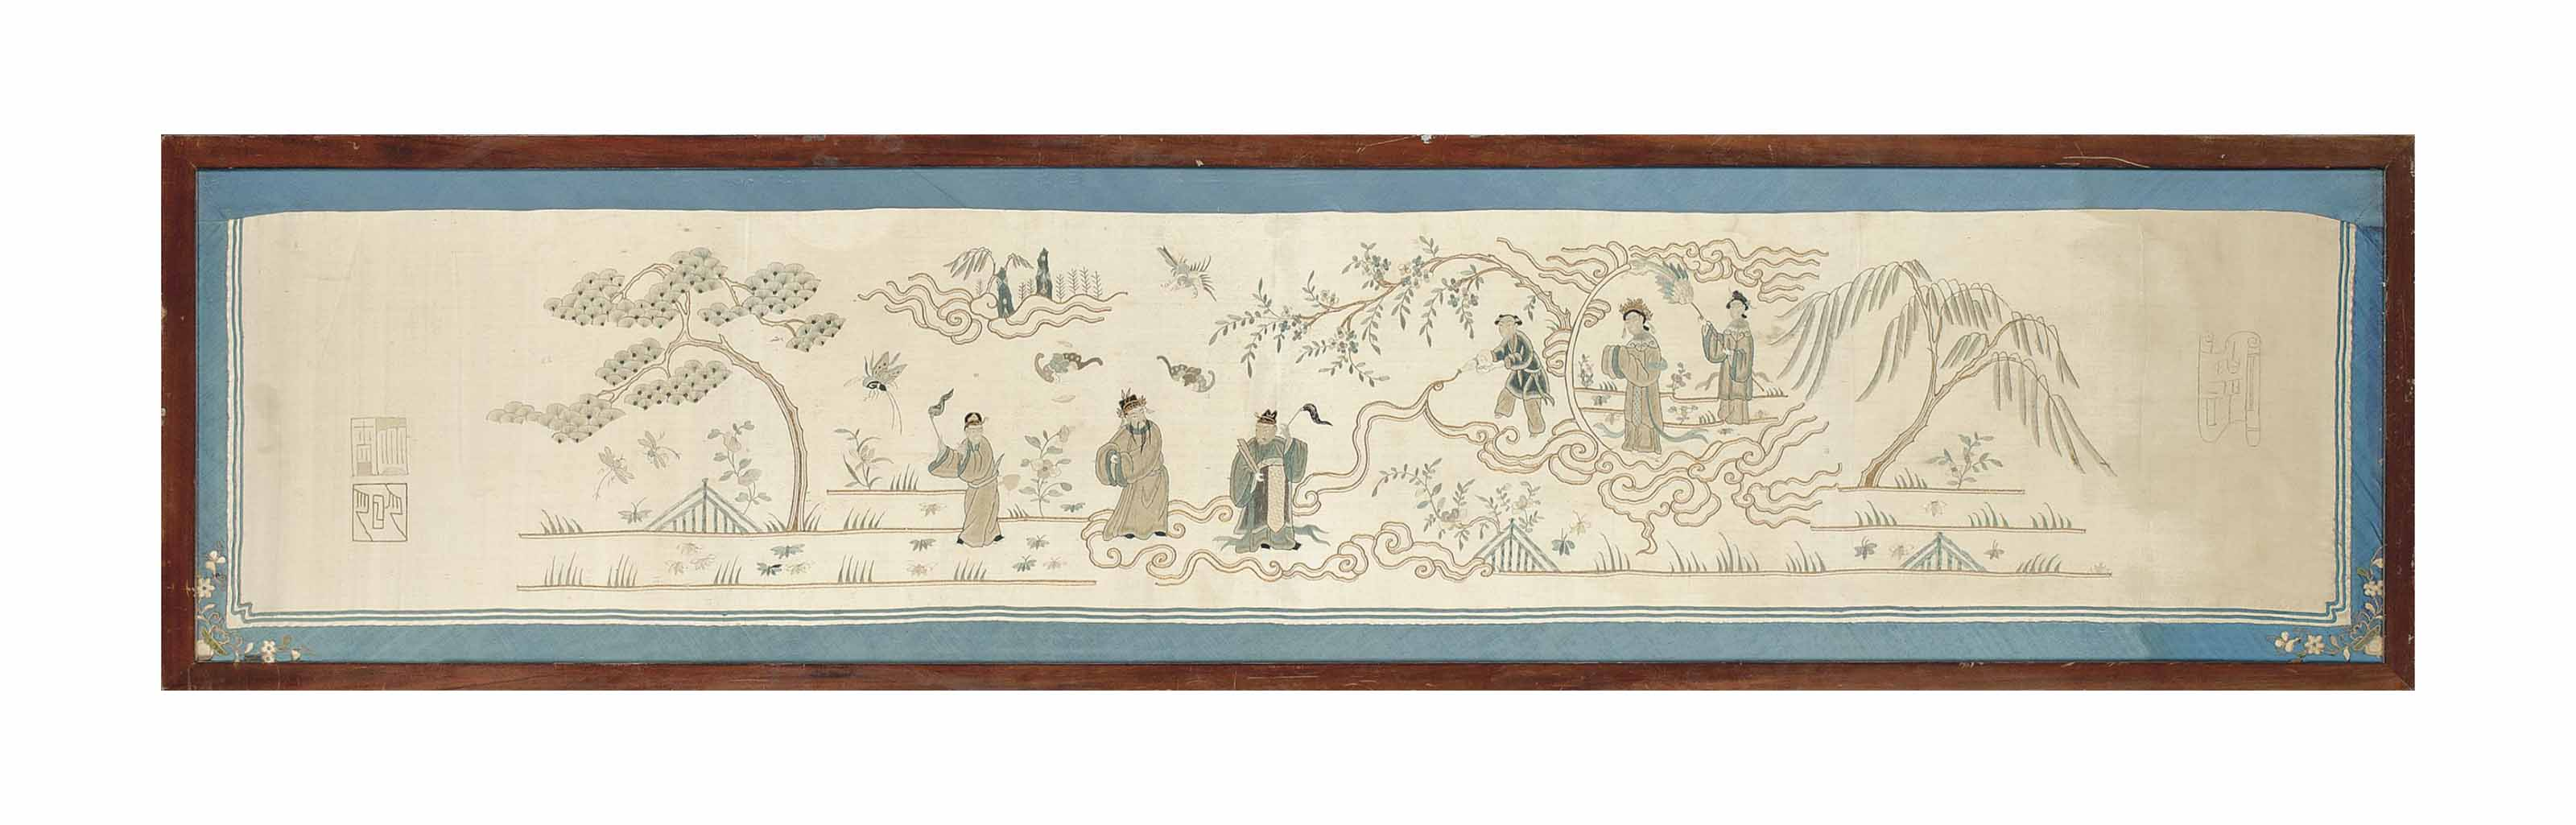 A CHINESE EMBROIDERED SILK PAN